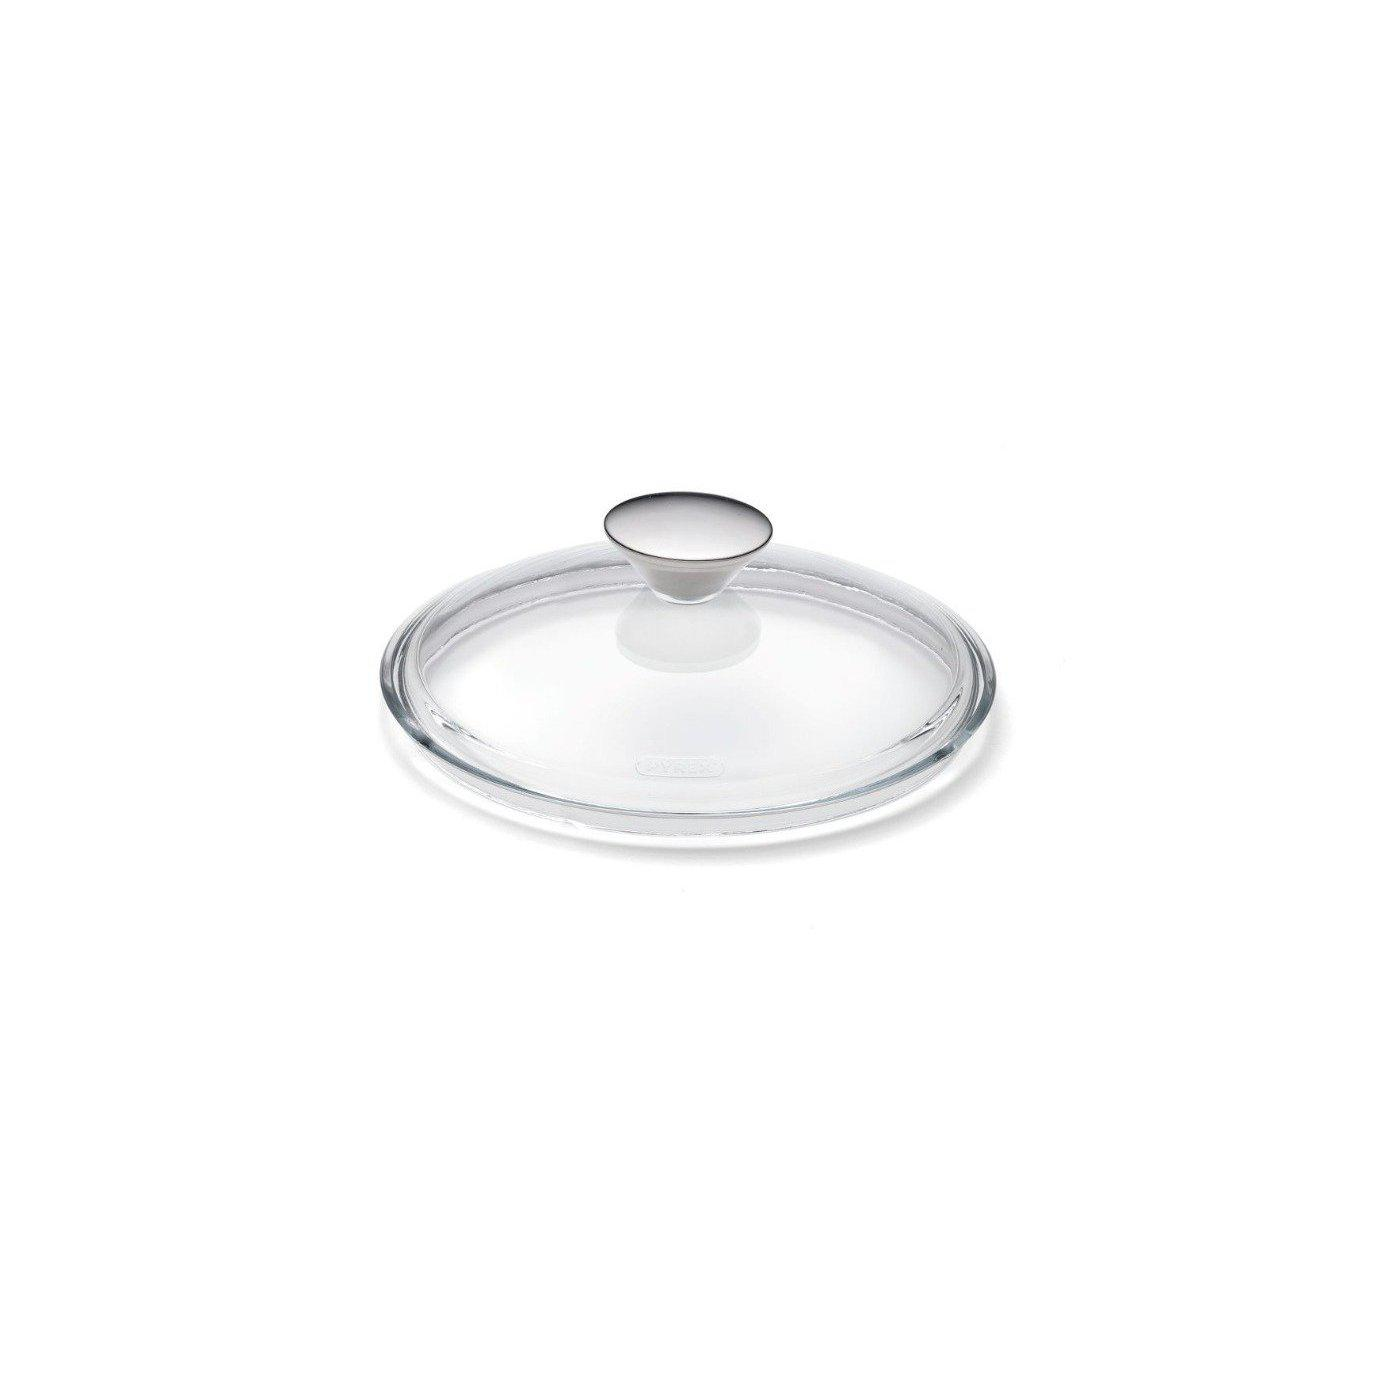 Giannini Vegetalia Evolution Glass Lid 16 cm Canada